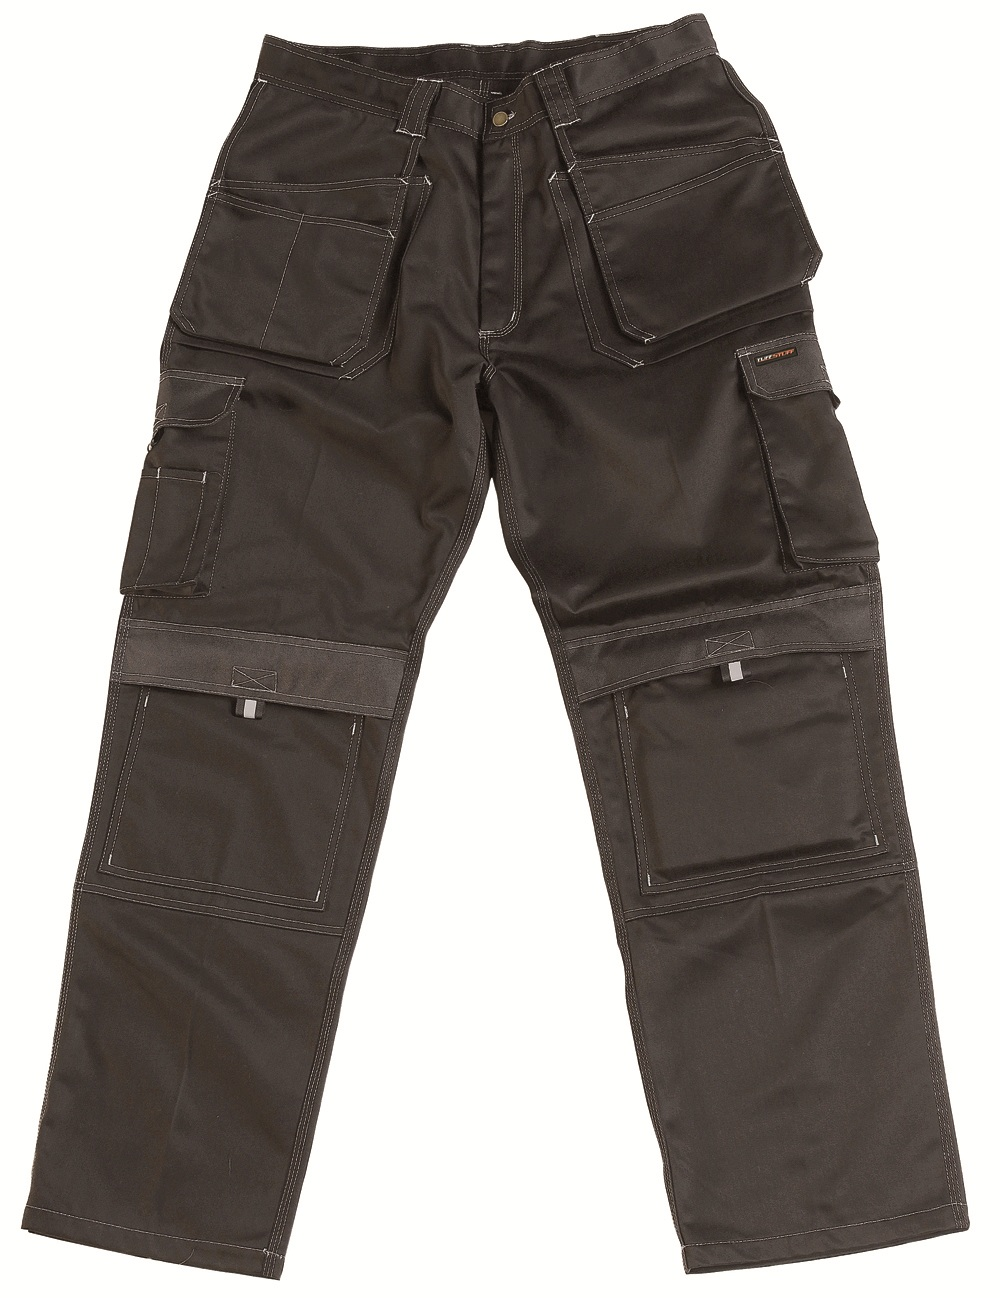 Tuff Stuff Expert Trousers